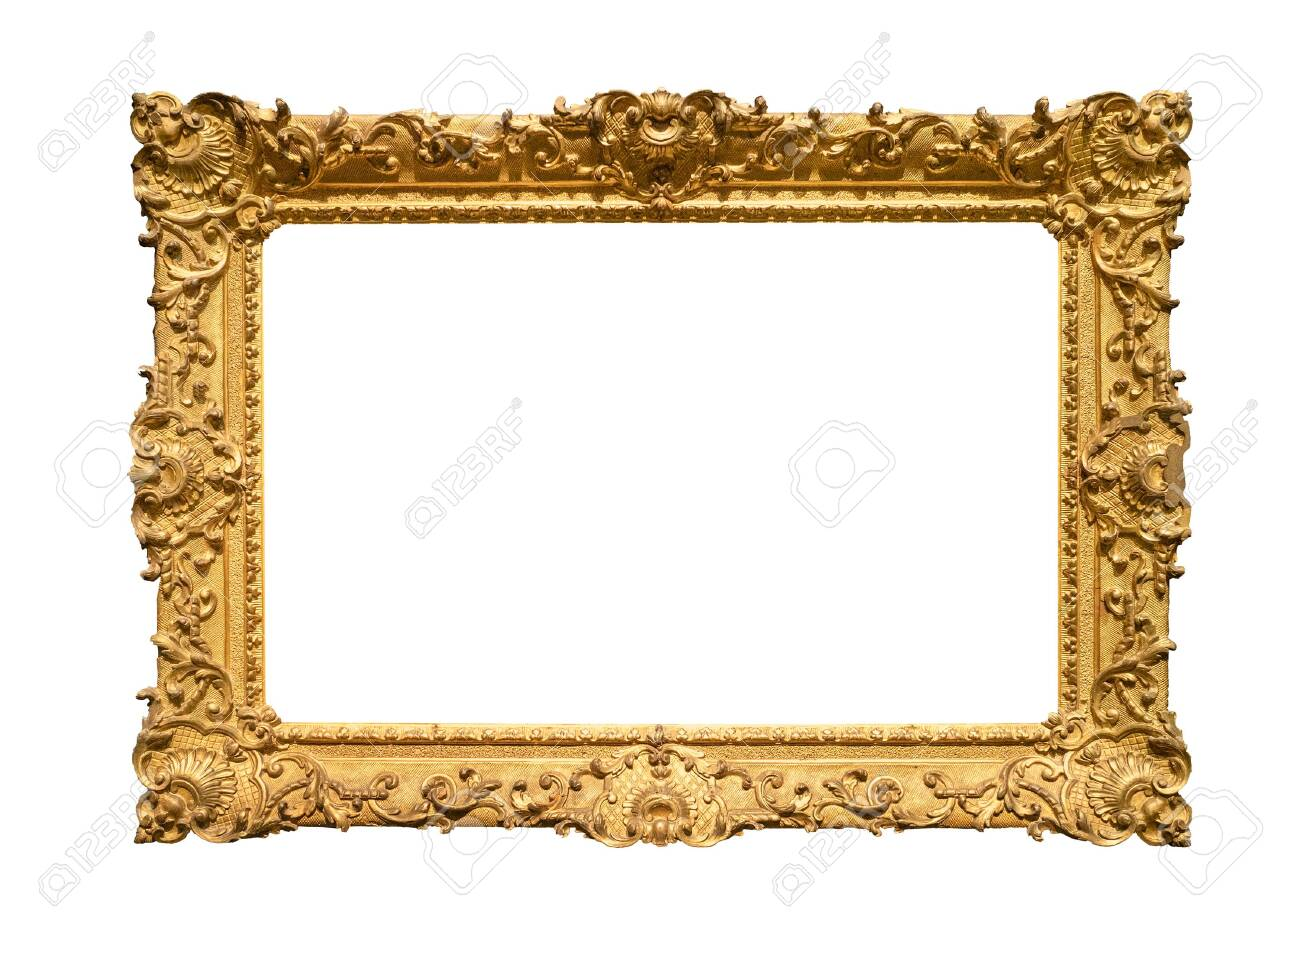 retro wide decorated baroque painting frame painted in gold color cutout on white background - 129018387